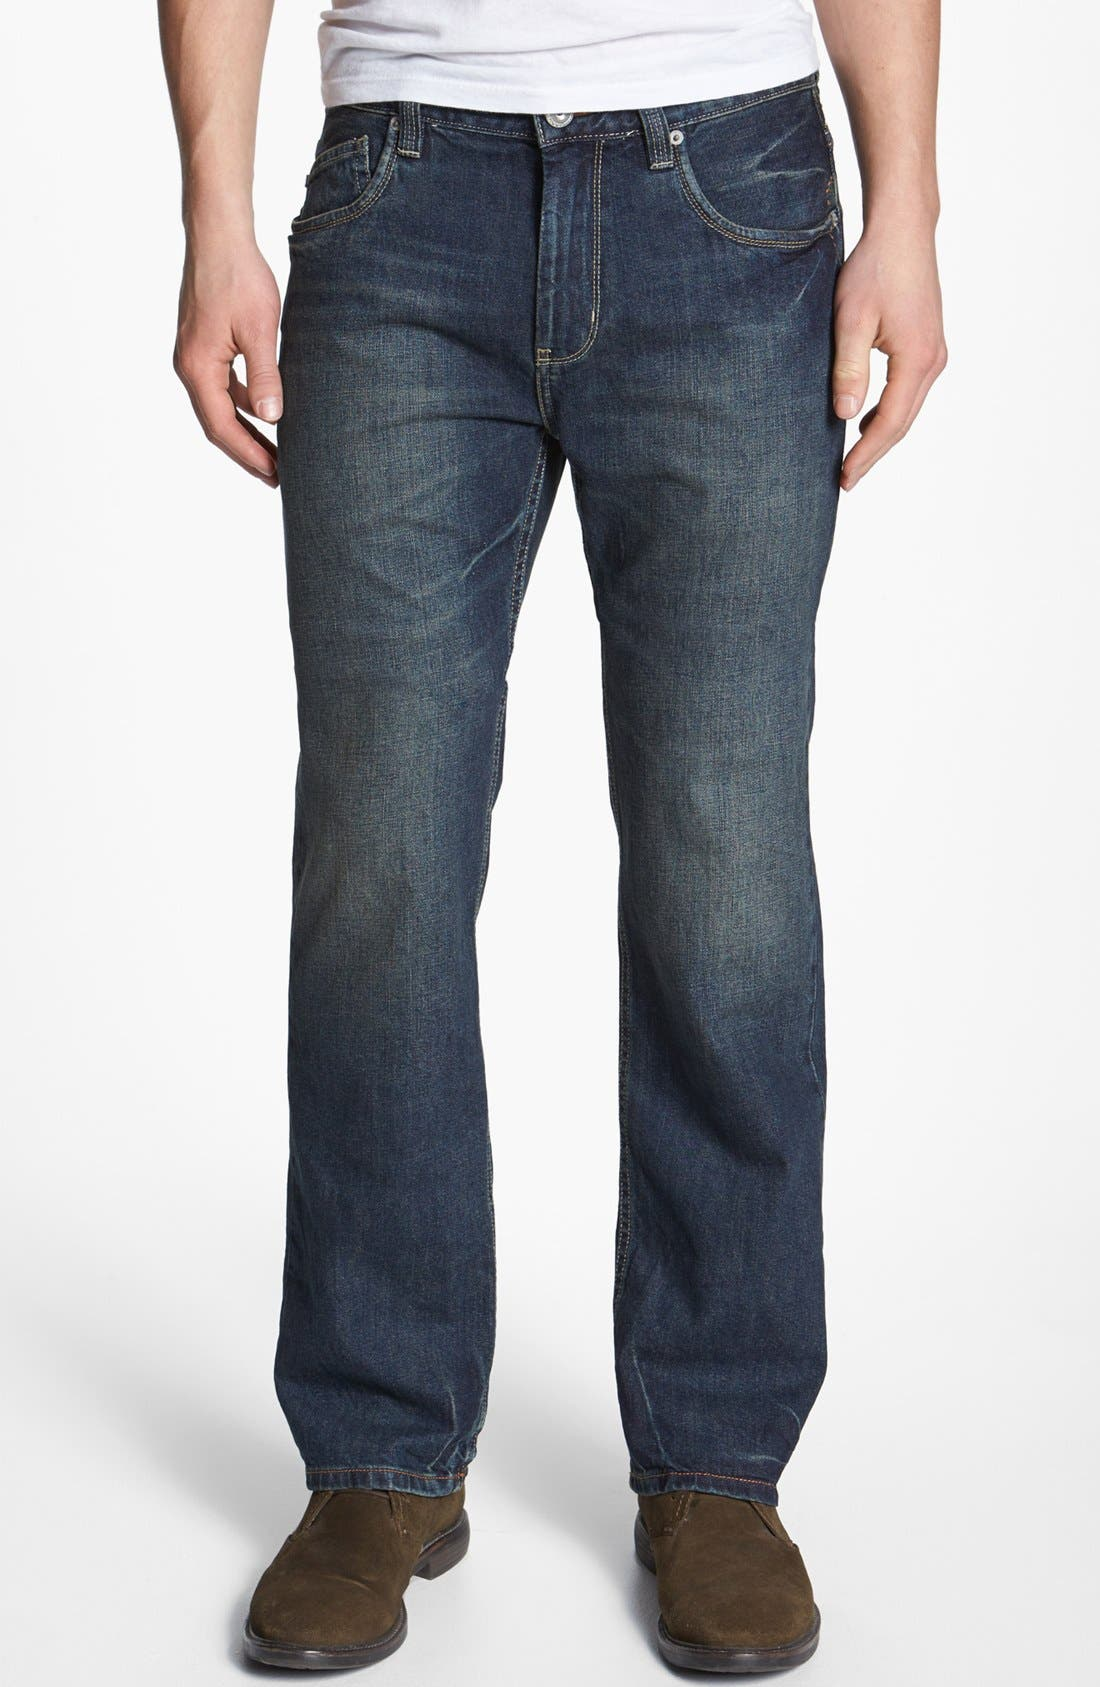 Alternate Image 1 Selected - Tommy Bahama Denim 'Steve Standard Fit' Jeans (Vintage)